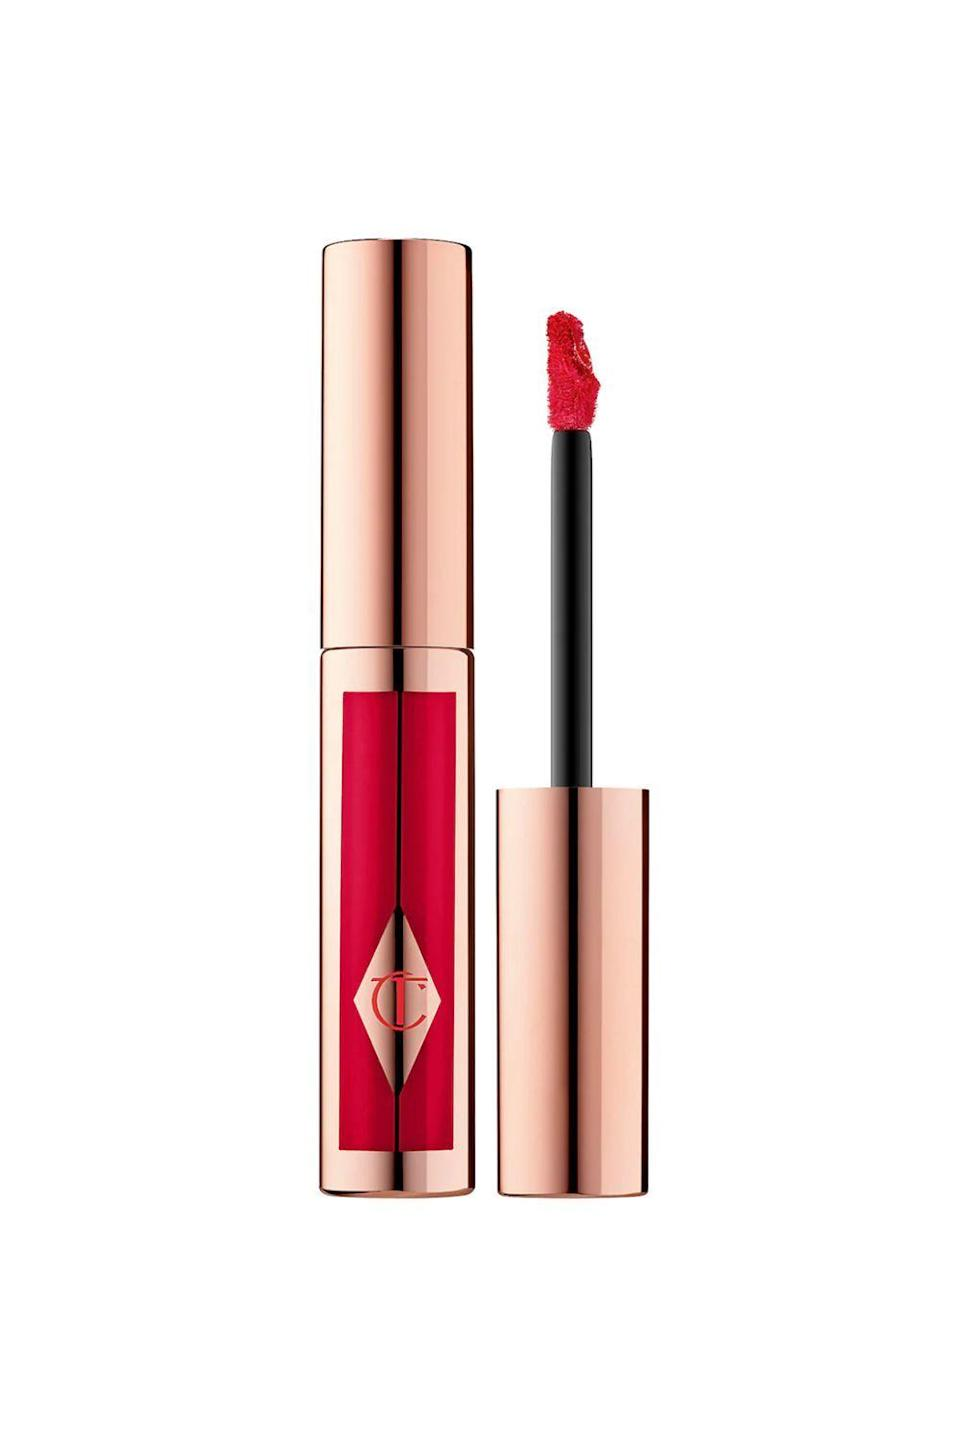 "<p><strong>Charlotte Tilbury</strong></p><p>sephora.com</p><p><strong>$34.00</strong></p><p><a href=""https://go.redirectingat.com?id=74968X1596630&url=https%3A%2F%2Fwww.sephora.com%2Fproduct%2Fhollywood-lips-P433865&sref=https%3A%2F%2Fwww.oprahmag.com%2Fbeauty%2Fskin-makeup%2Fg34963135%2Fbest-red-lipsticks%2F"" rel=""nofollow noopener"" target=""_blank"" data-ylk=""slk:Shop Now"" class=""link rapid-noclick-resp"">Shop Now</a></p><p>Get ready to paint the town red—thanks to this liquid lipstick from Charlotte Tilbury. Inspired by the glitz and glamour of old Hollywood, the ruby red formula looks and feels like a velvet matte (it even contains beeswax to ensure it stays put), but without any caking or cracking (due to deeply moisturizing hyaluronic acid). Plus, the award-worthy, crescent-shaped wand, which fits perfectly around curves and dips, makes application as close to foolproof as you can get.</p>"